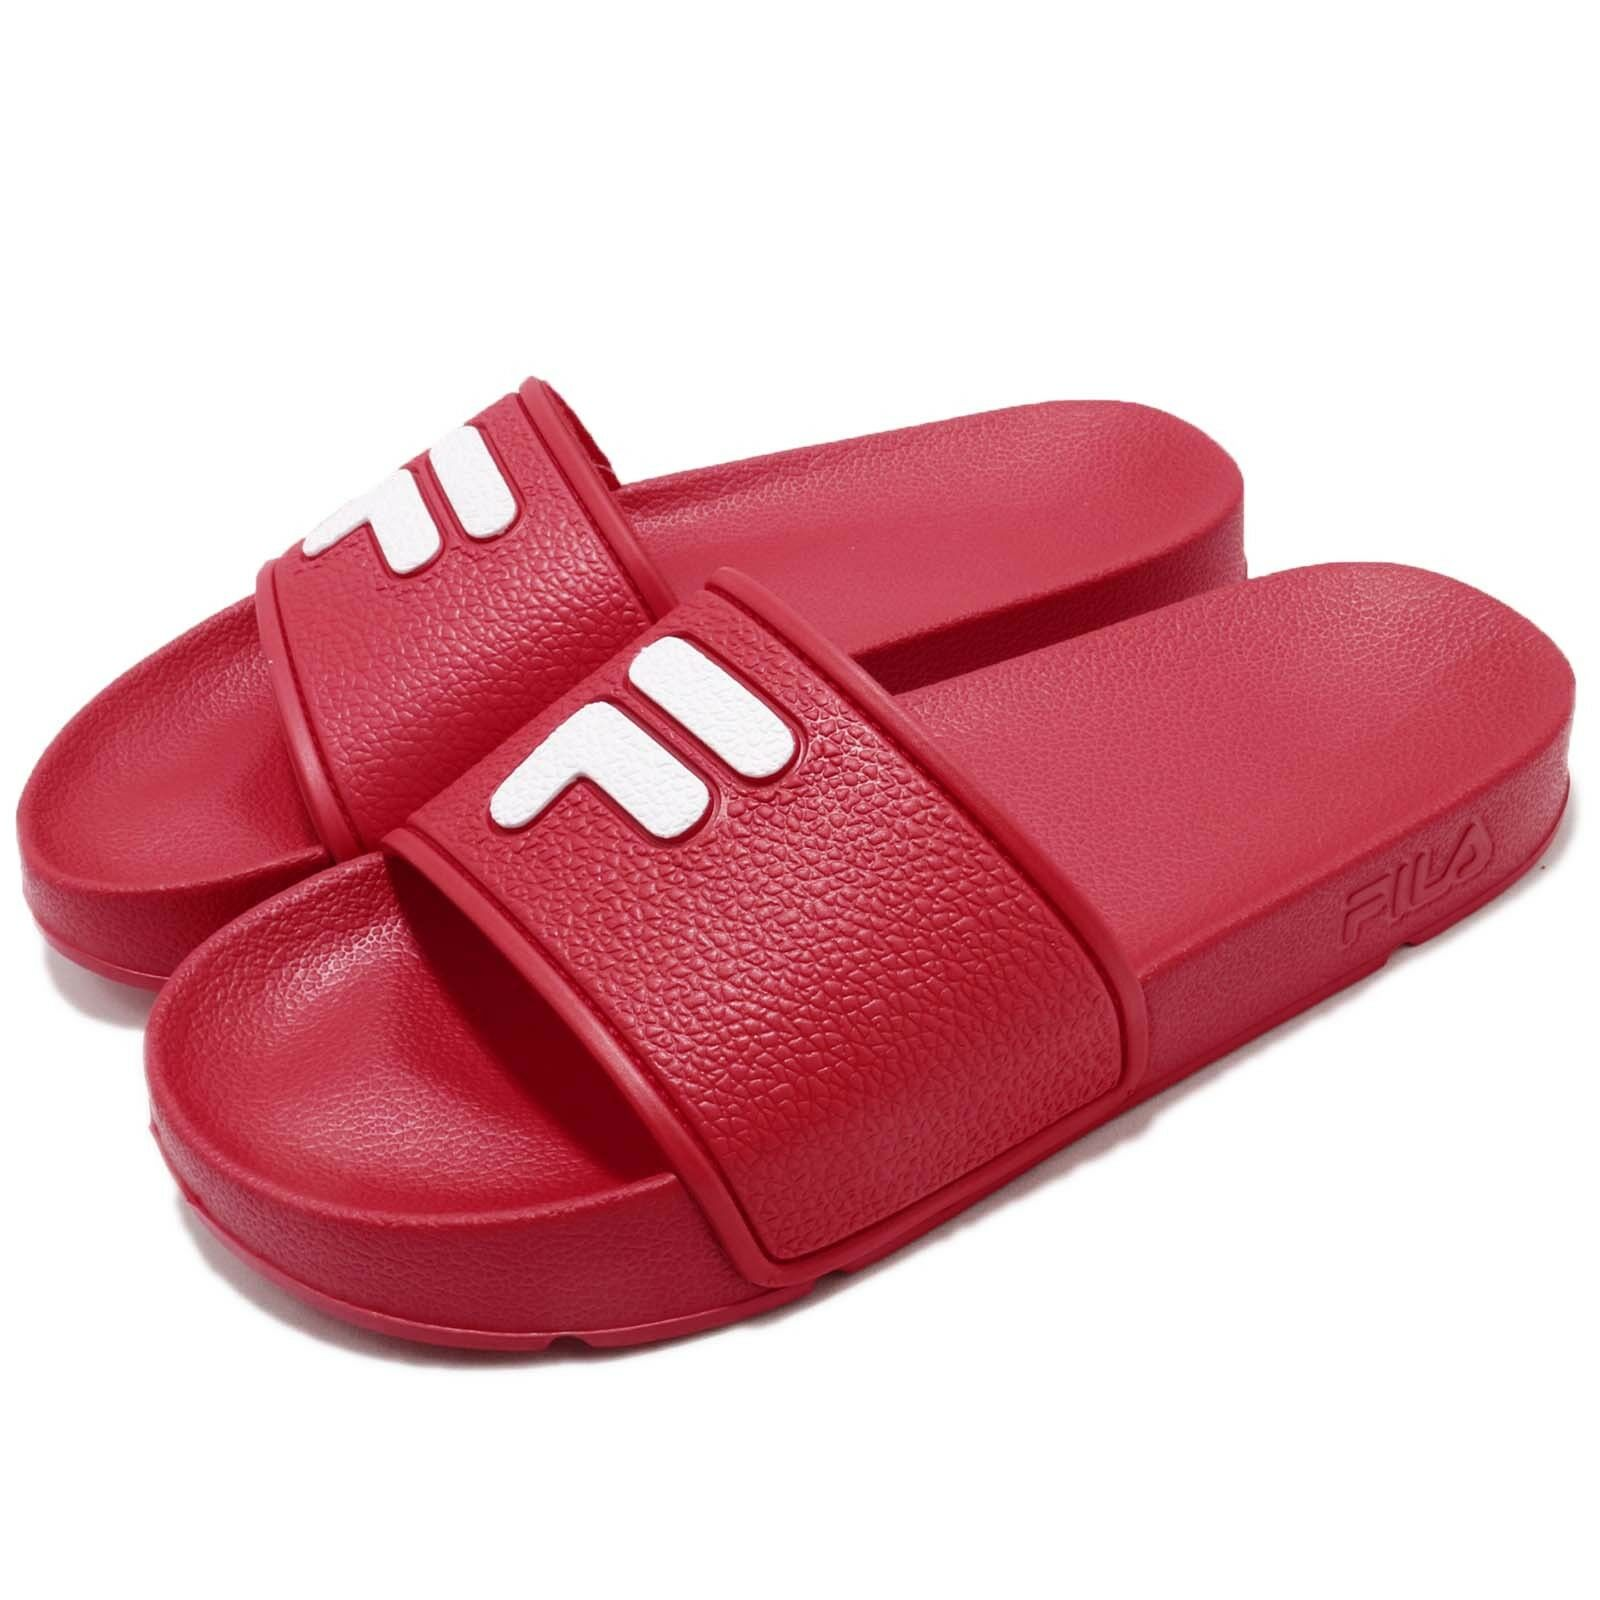 Man/Woman Fila S316S Logo Red White Rubber Slides Men Women Sports Sandals Slides Rubber Slippers Louis, elaborate a variety of Diversified new design WV527 97a0e7